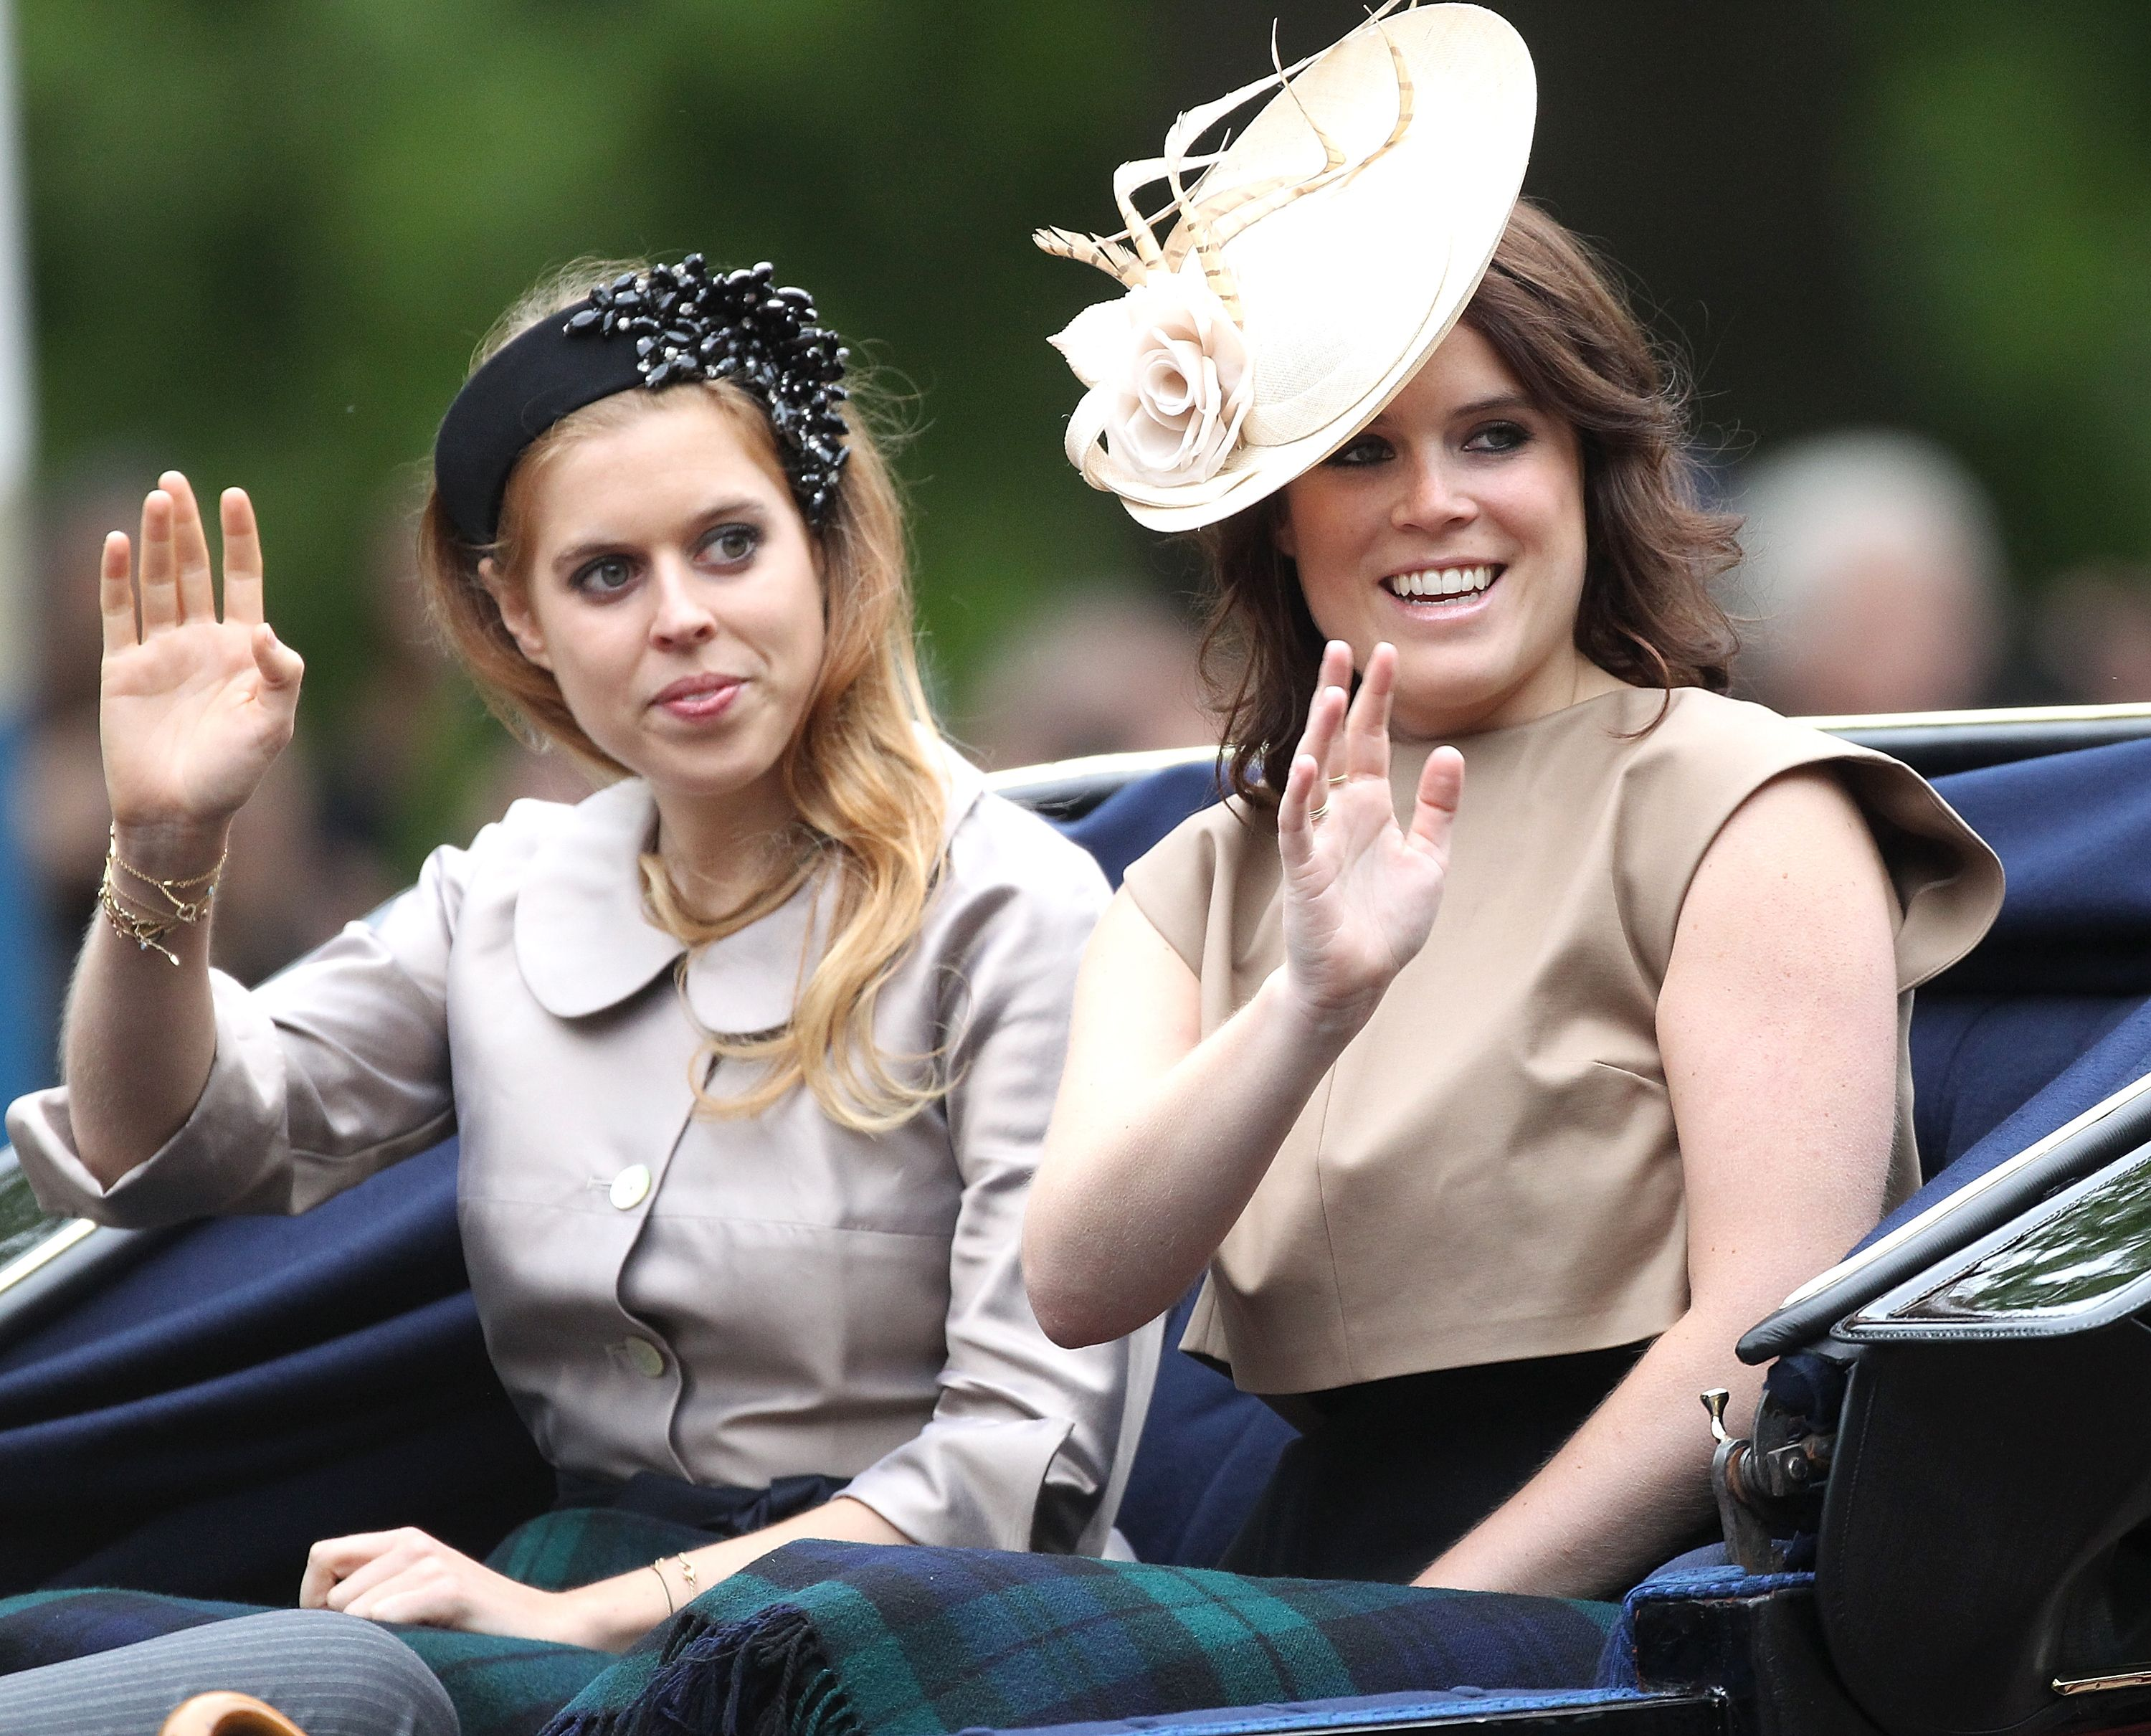 The Queen's granddaughters, Princesses Beatrice and Eugenie, are considered non-working royals and therefore do not receive any public money.